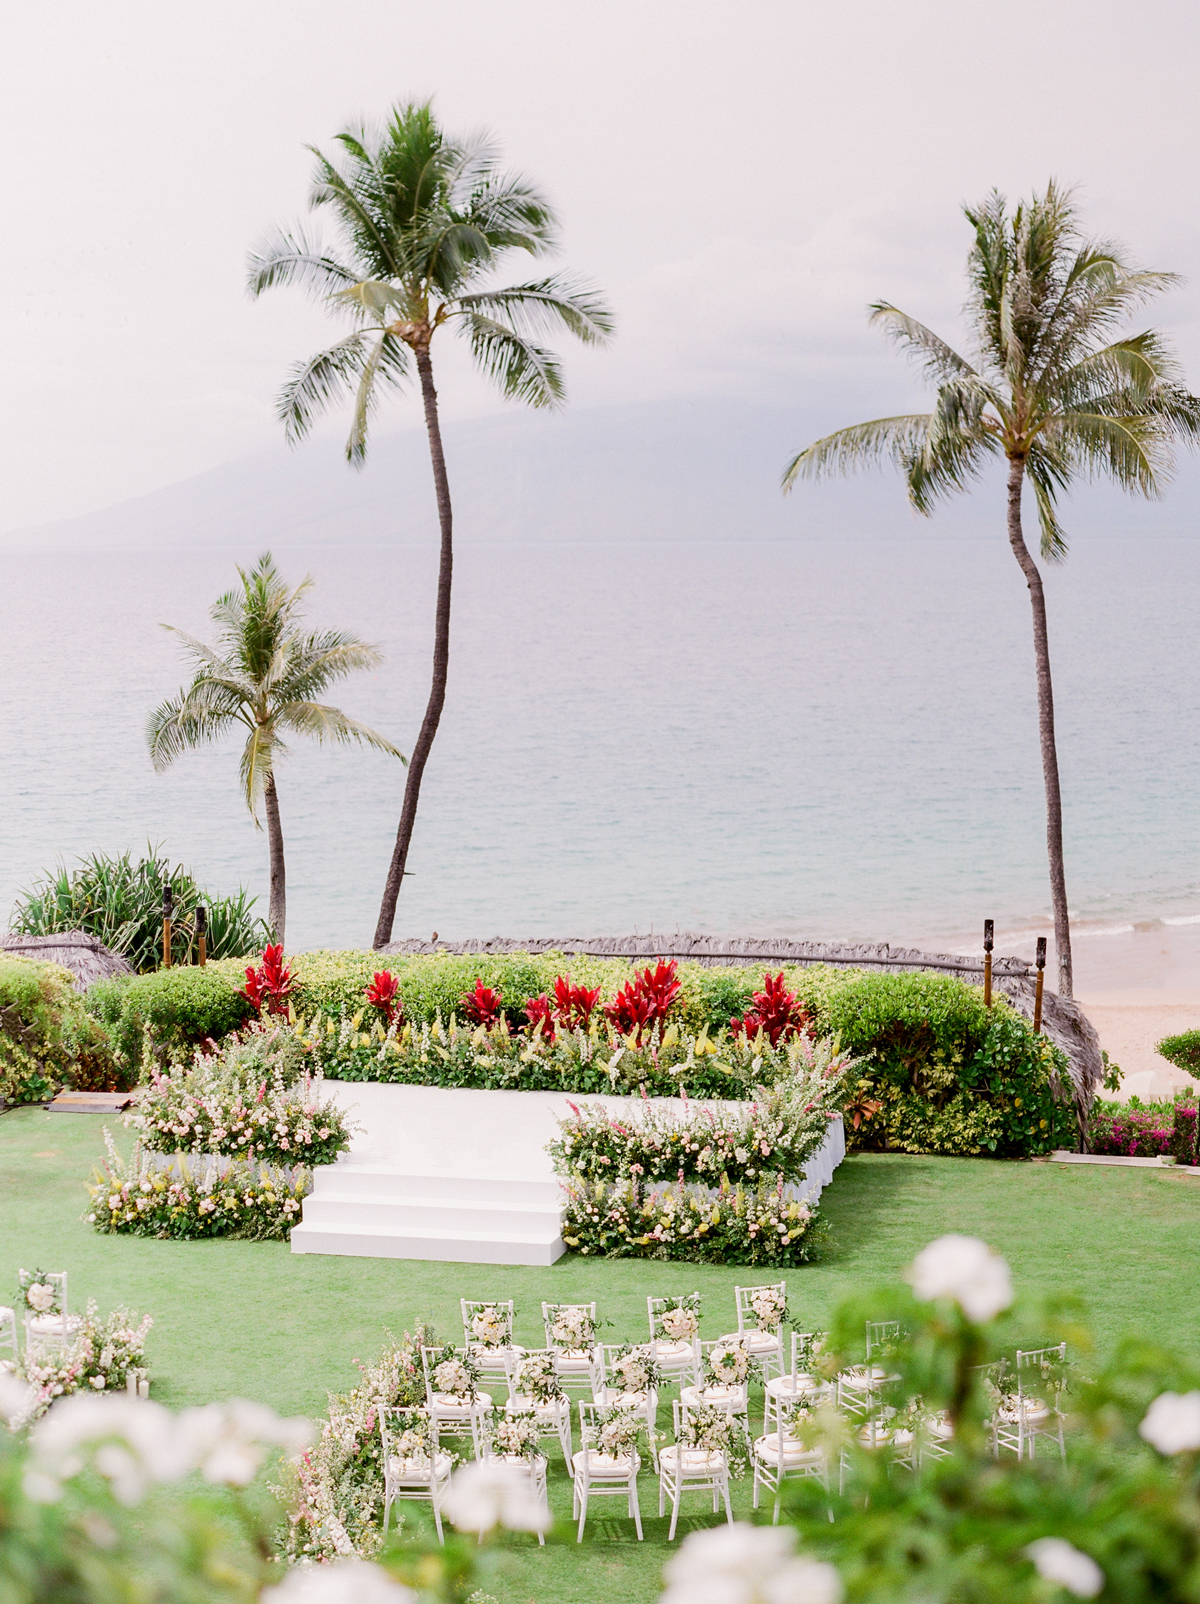 Maui Four Seasons wedding venue outdoors